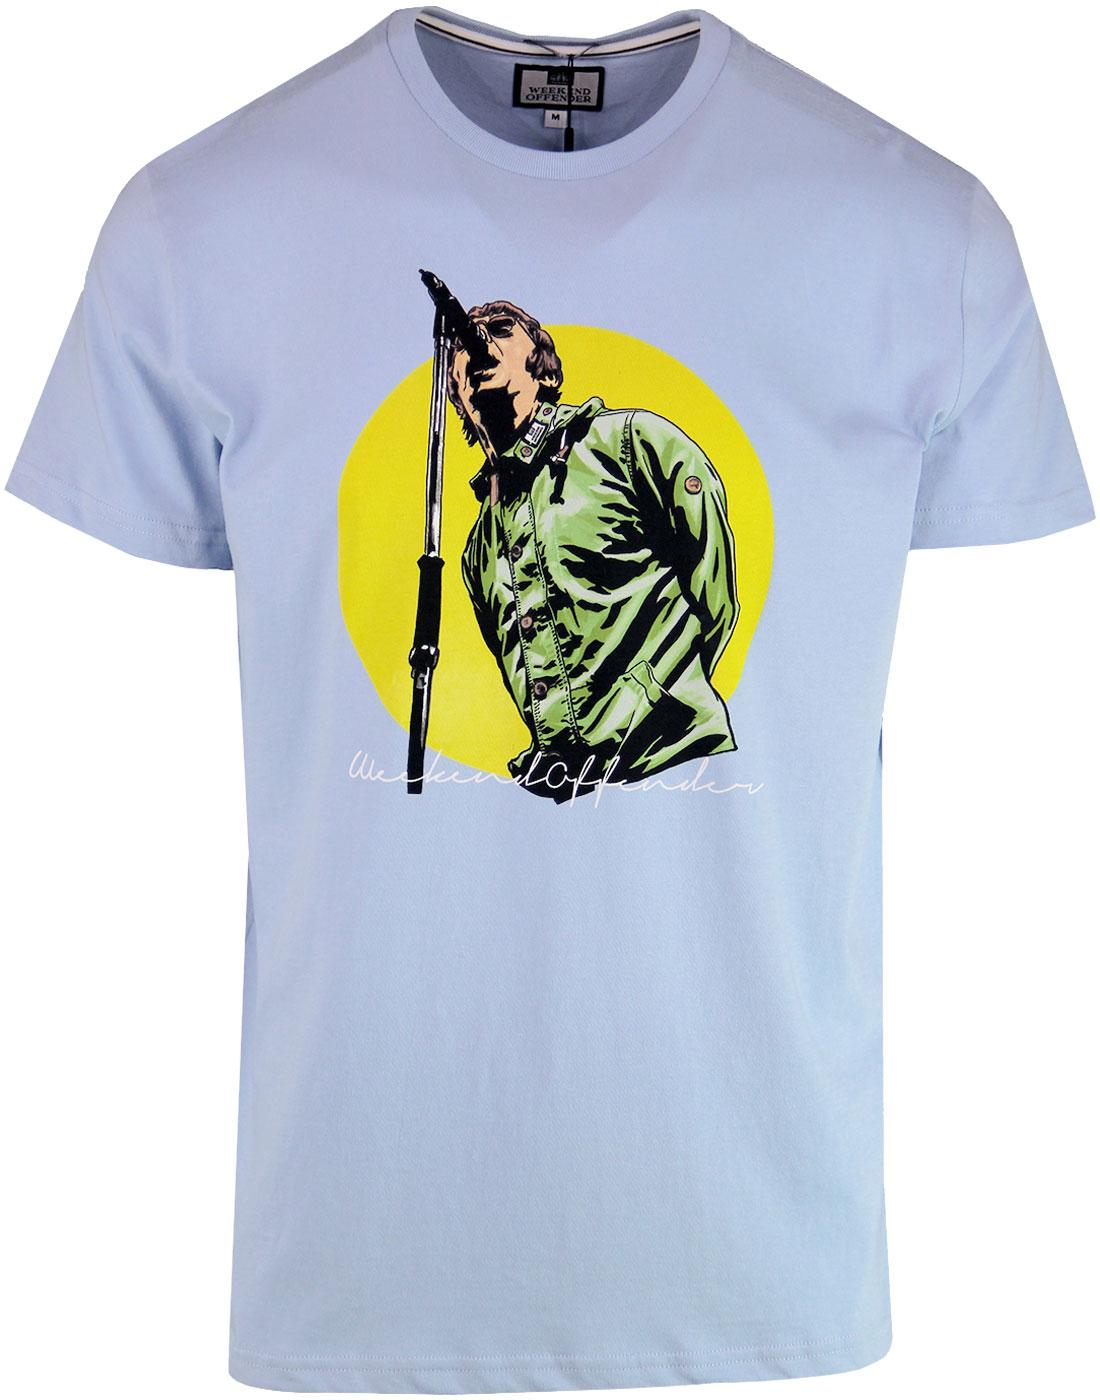 Liam WEEKEND OFFENDER Liam Gallagher 90s Tee SKY